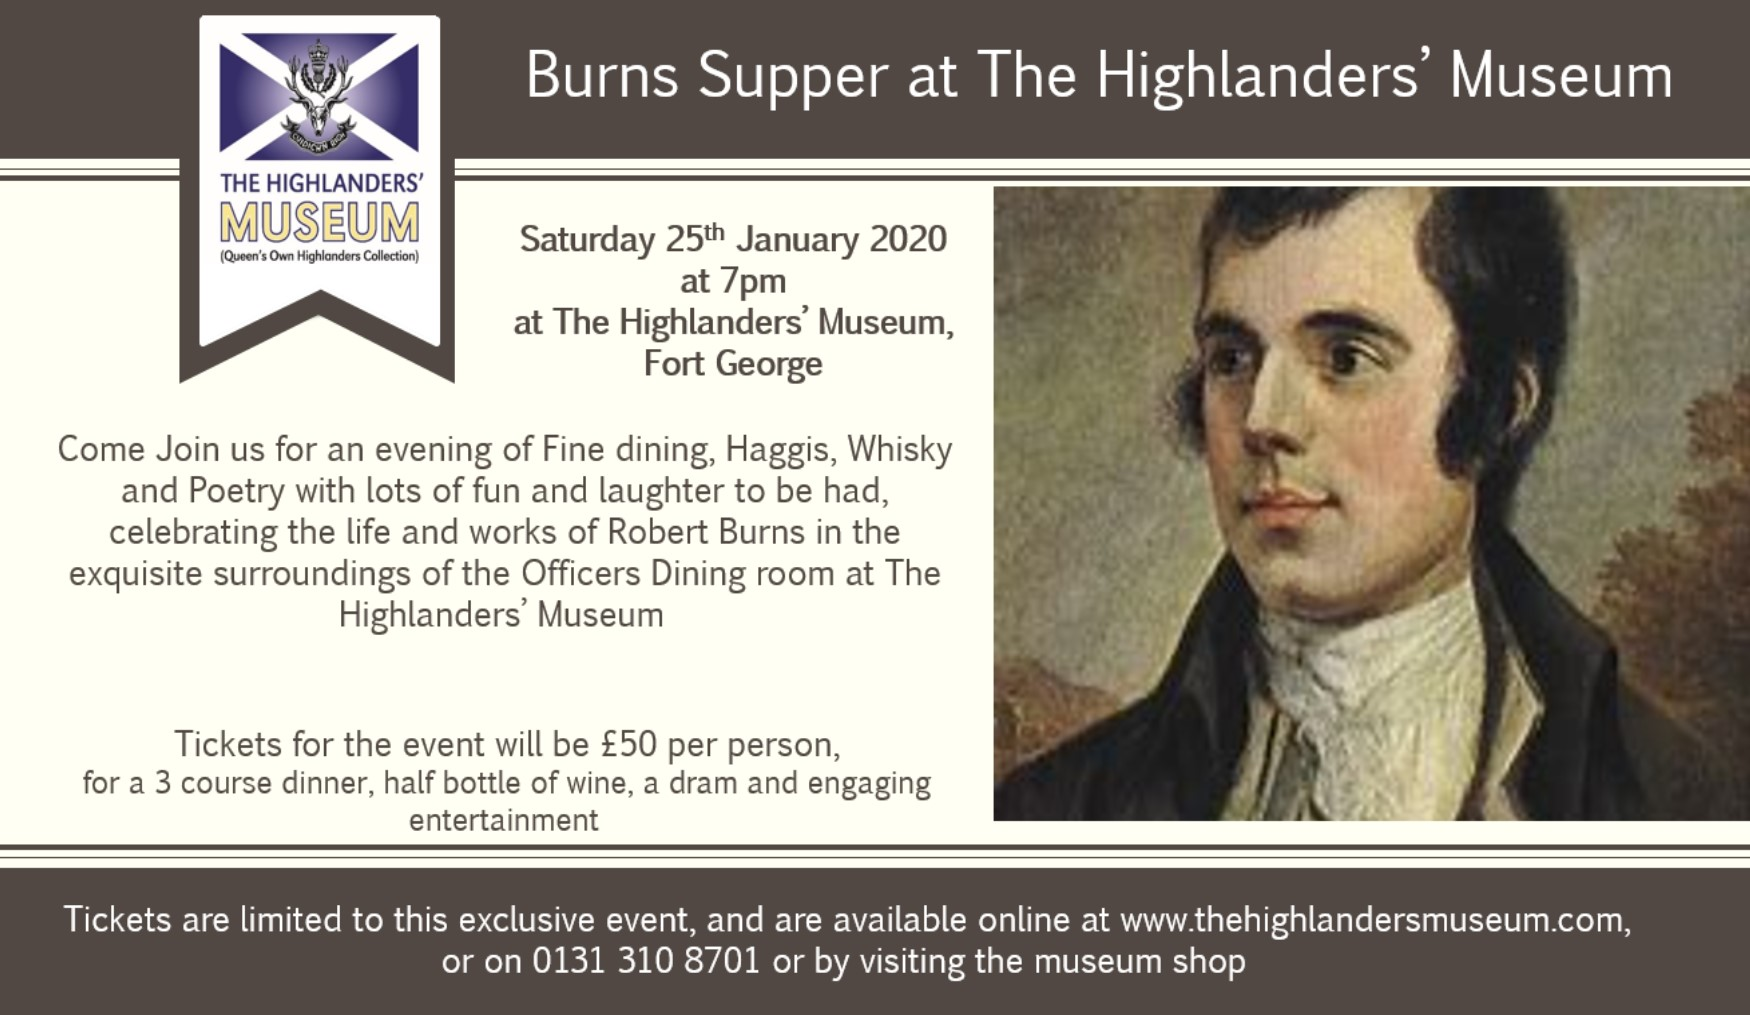 Burns Supper at the Highlanders' Museum